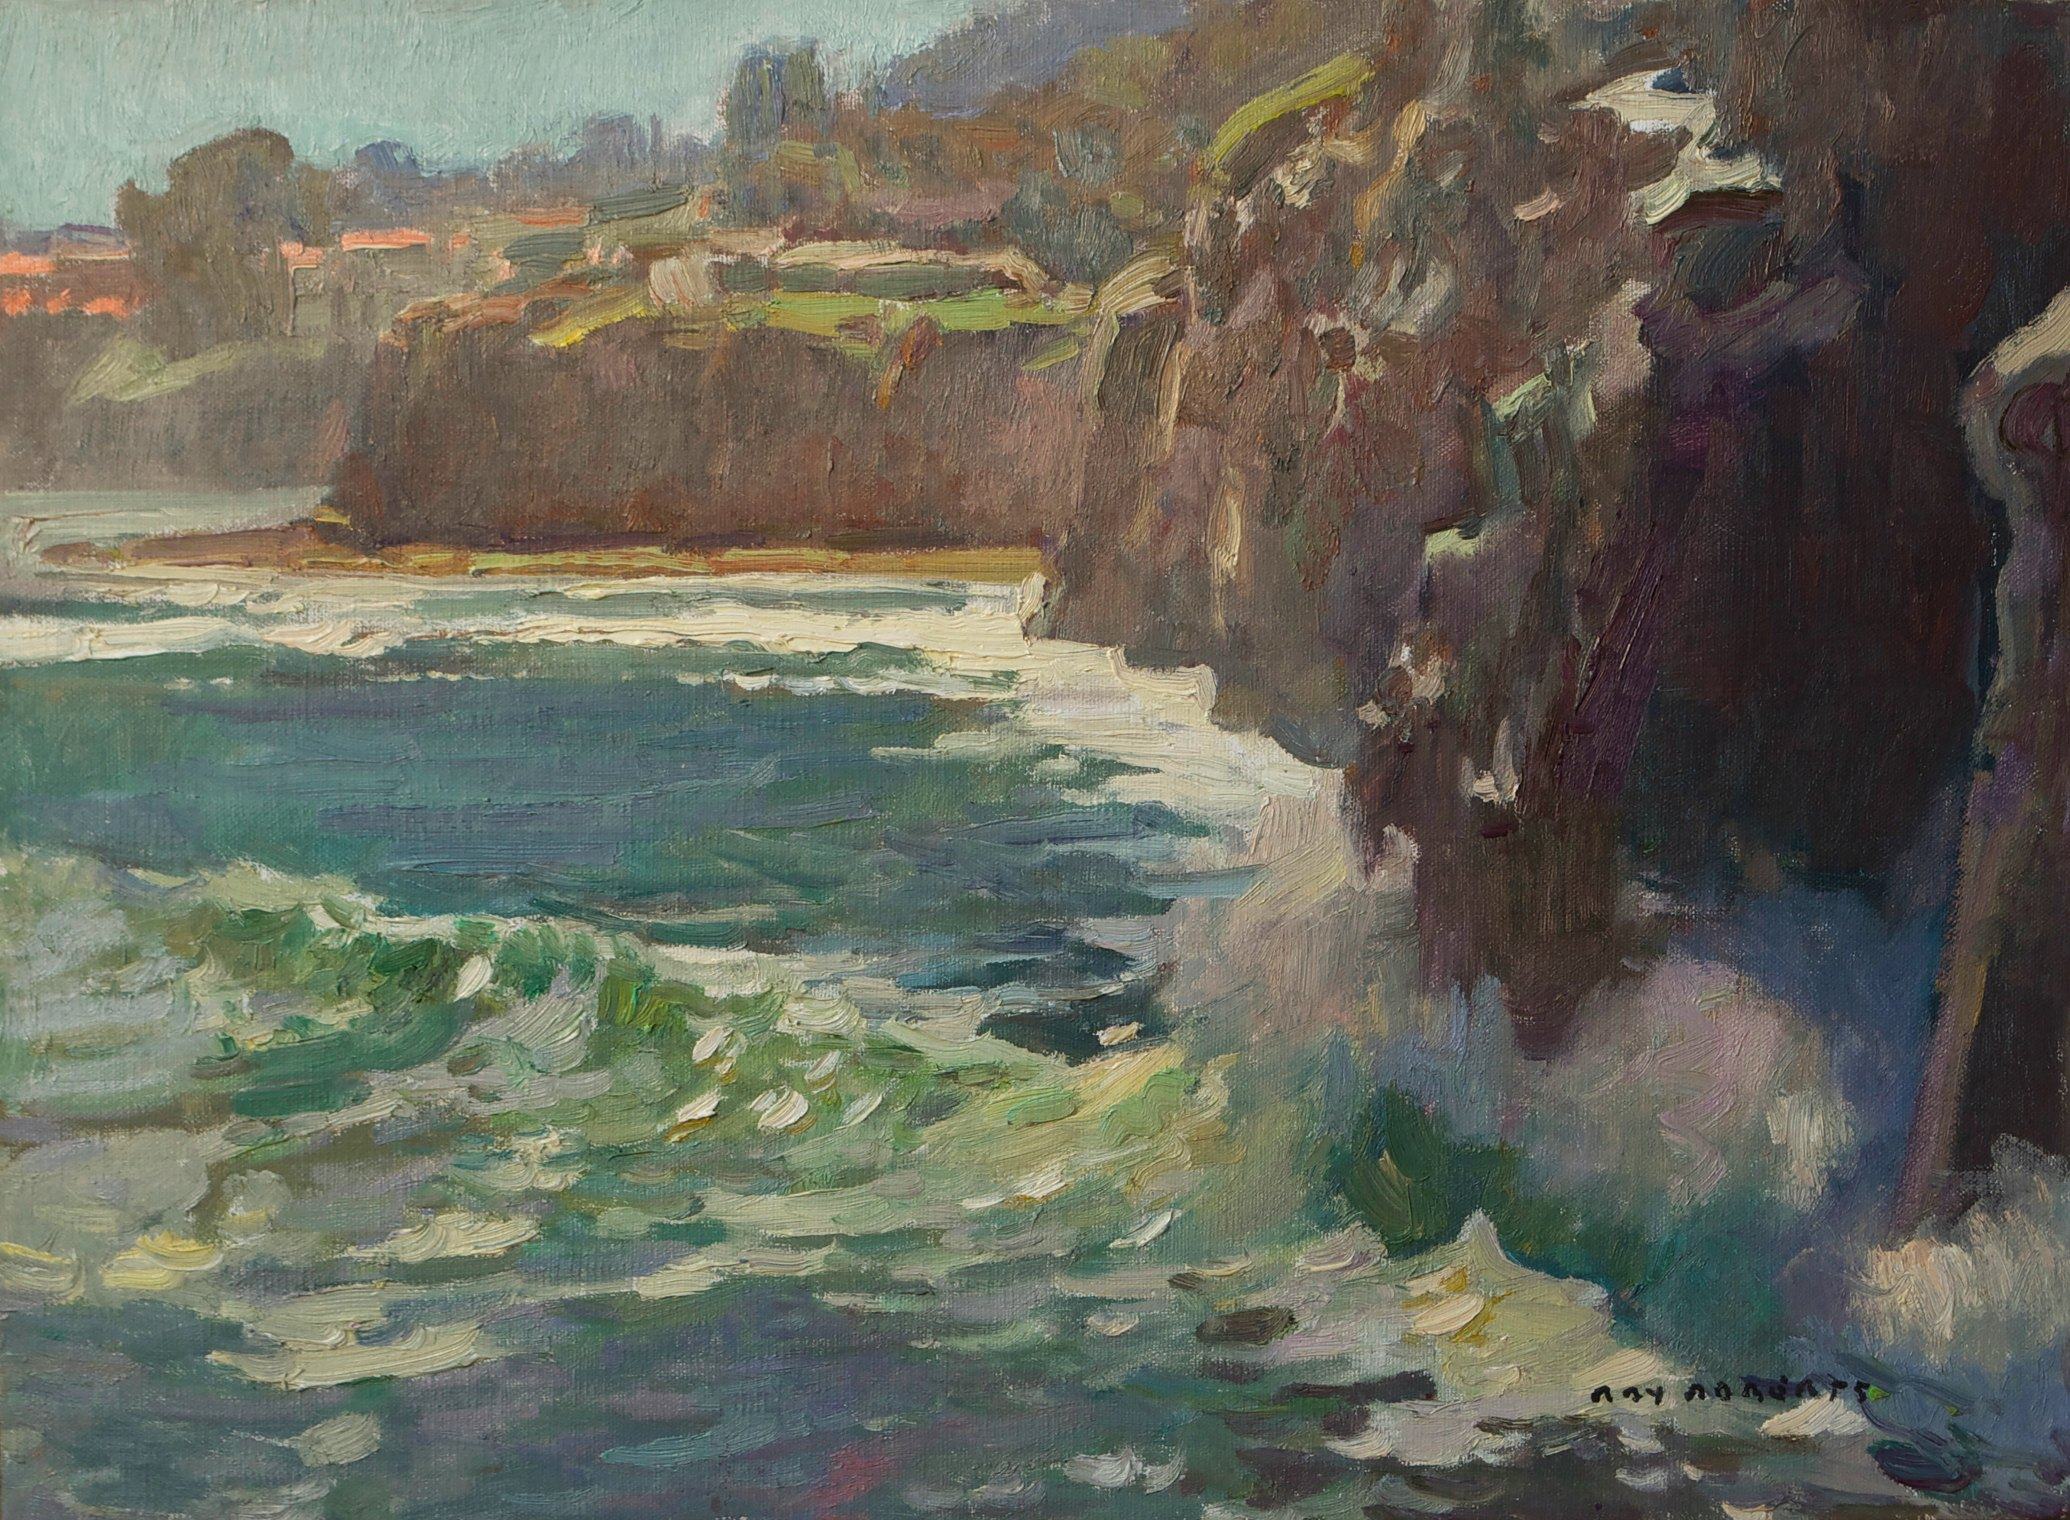 Laguna Invitational Artist Ray Roberts